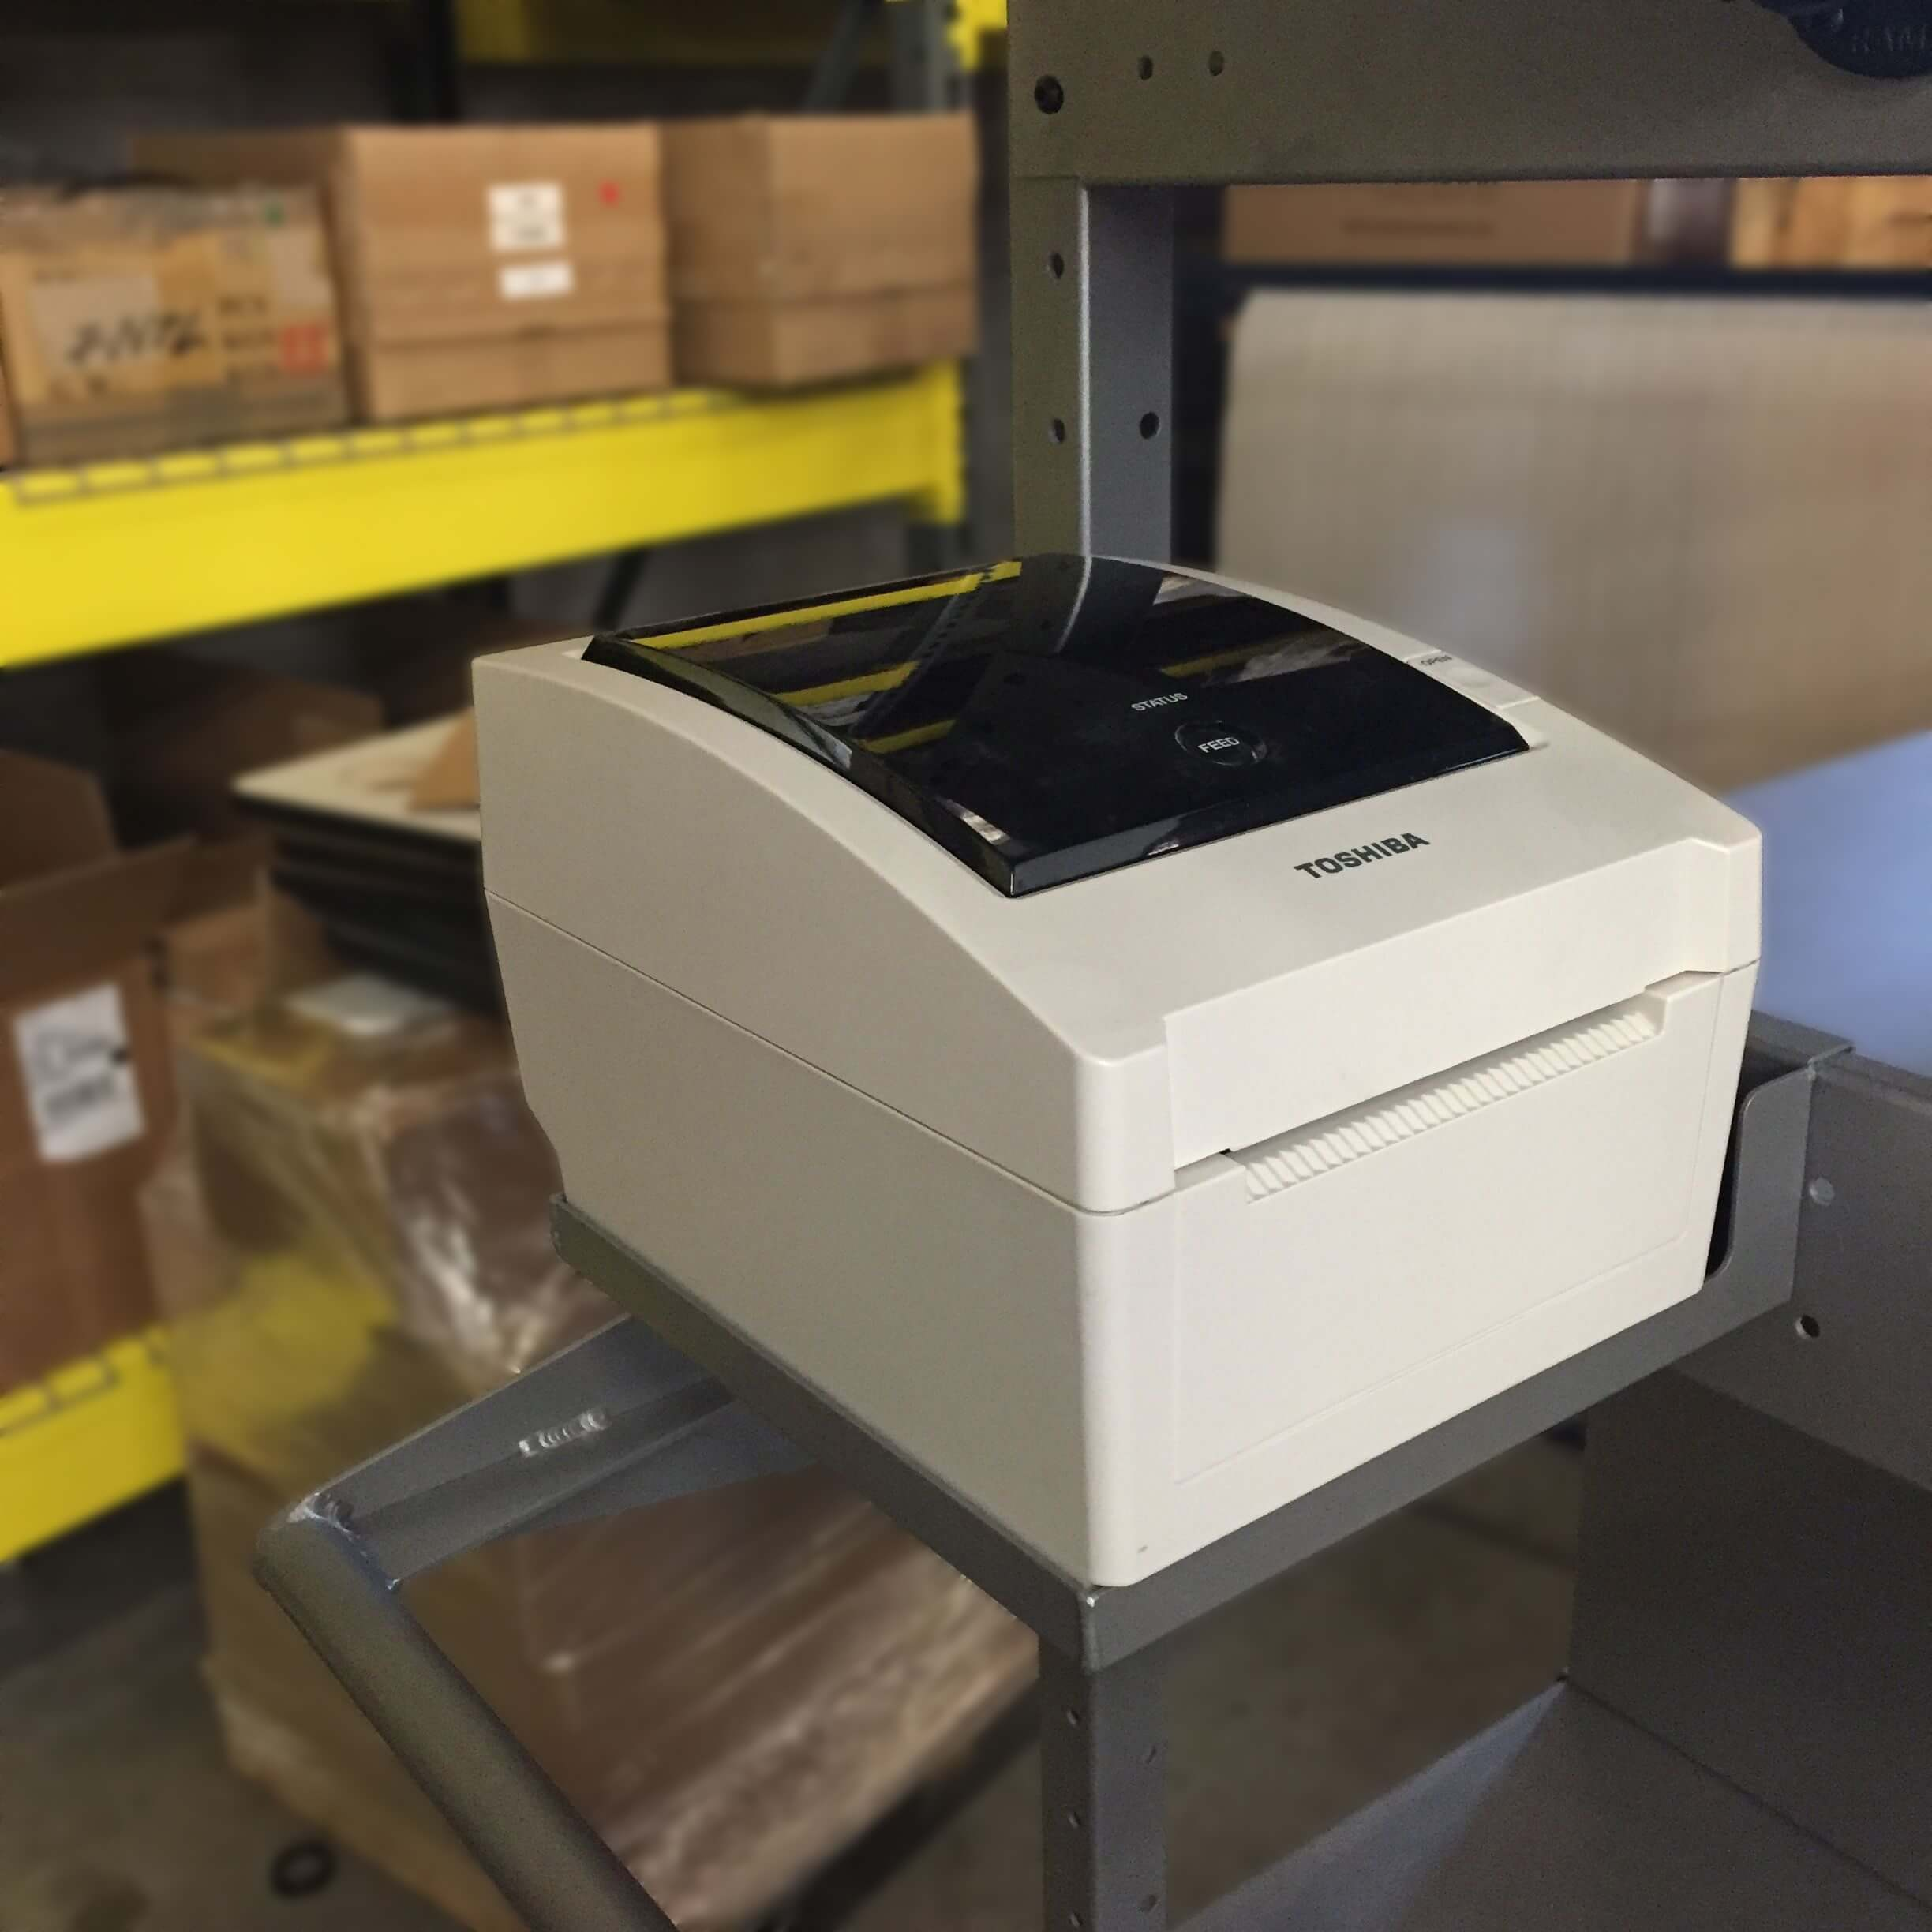 B302 Printer Tray Shelf for PowerPick Series Mobile Picking Cart by Newcastle Systems